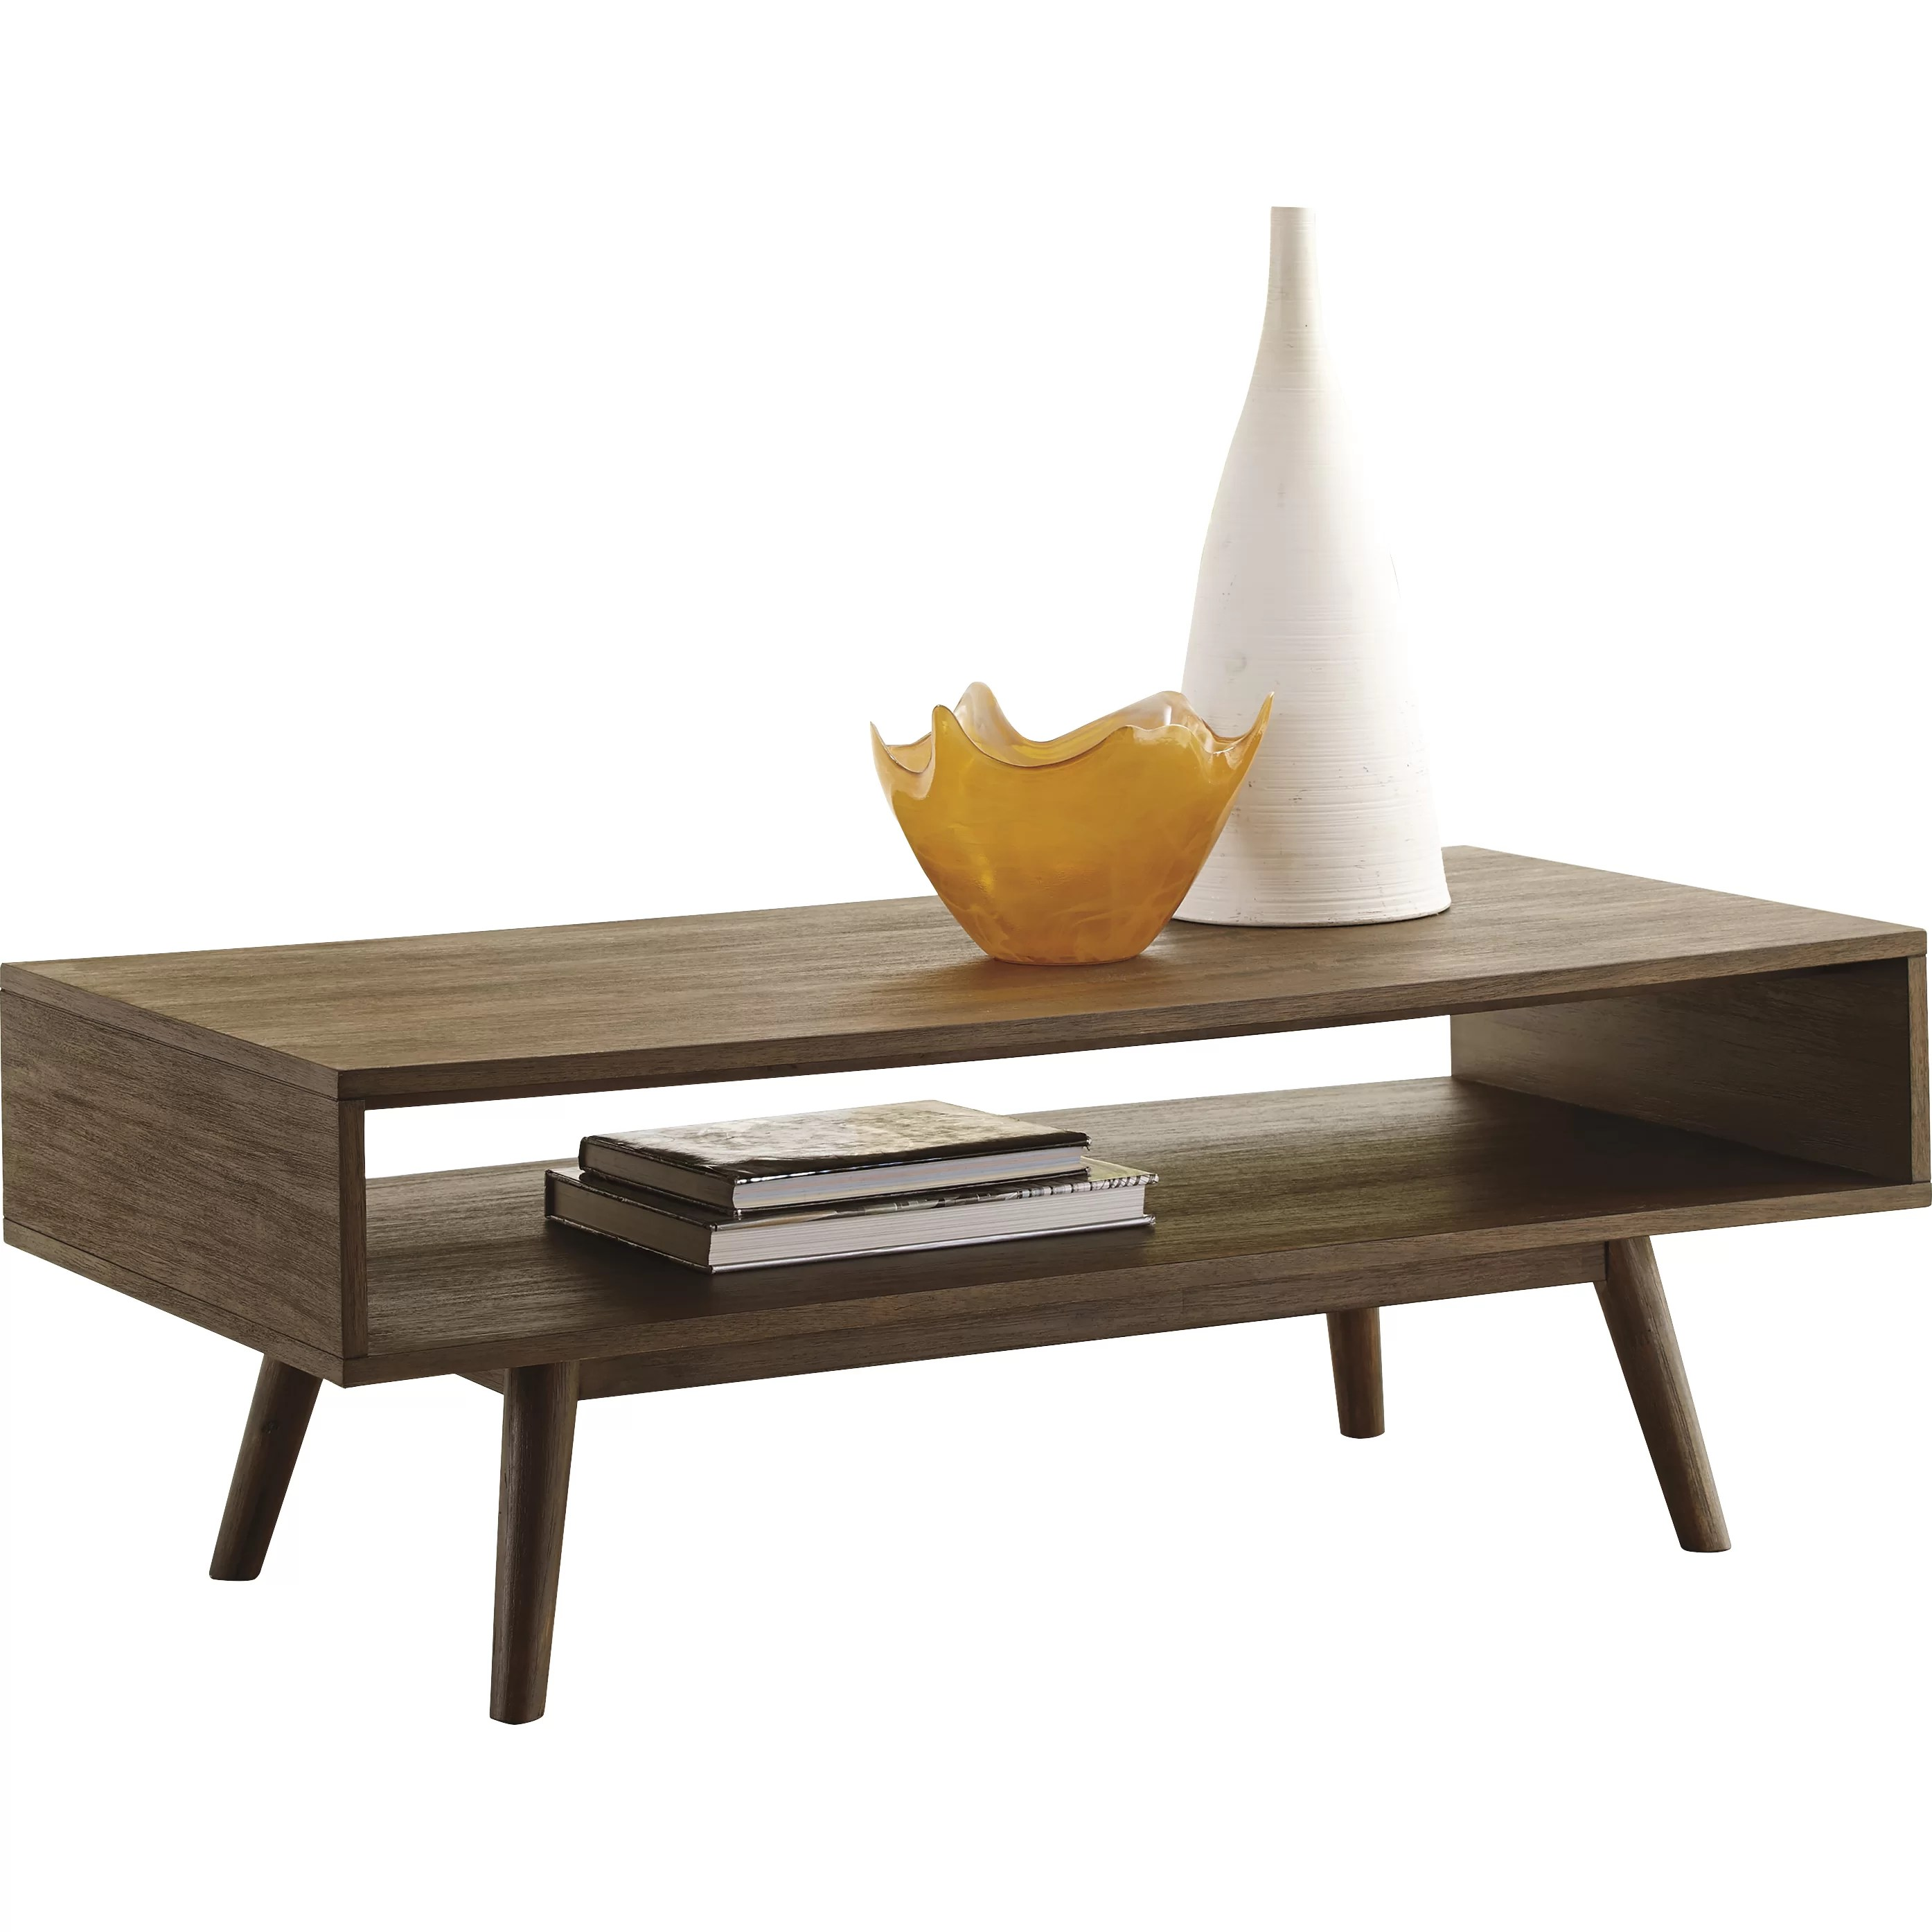 Modern Black And White Coffee Table Brayden Studio Holliday Coffee Table And Reviews Wayfair